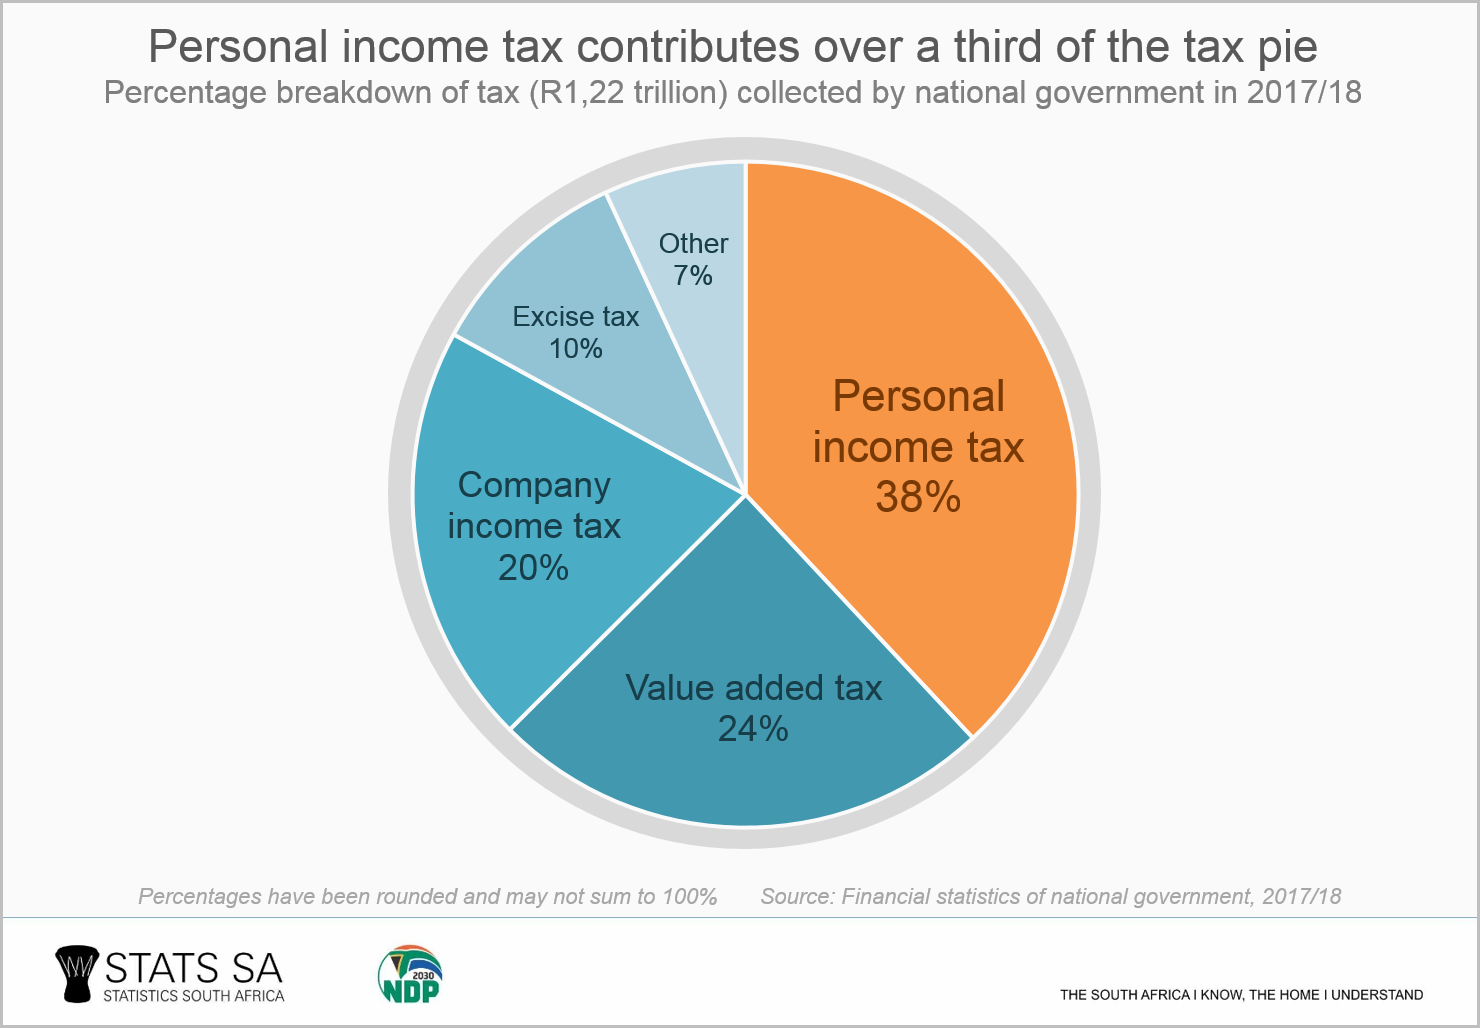 personal tax contributes over a third of the tax pie